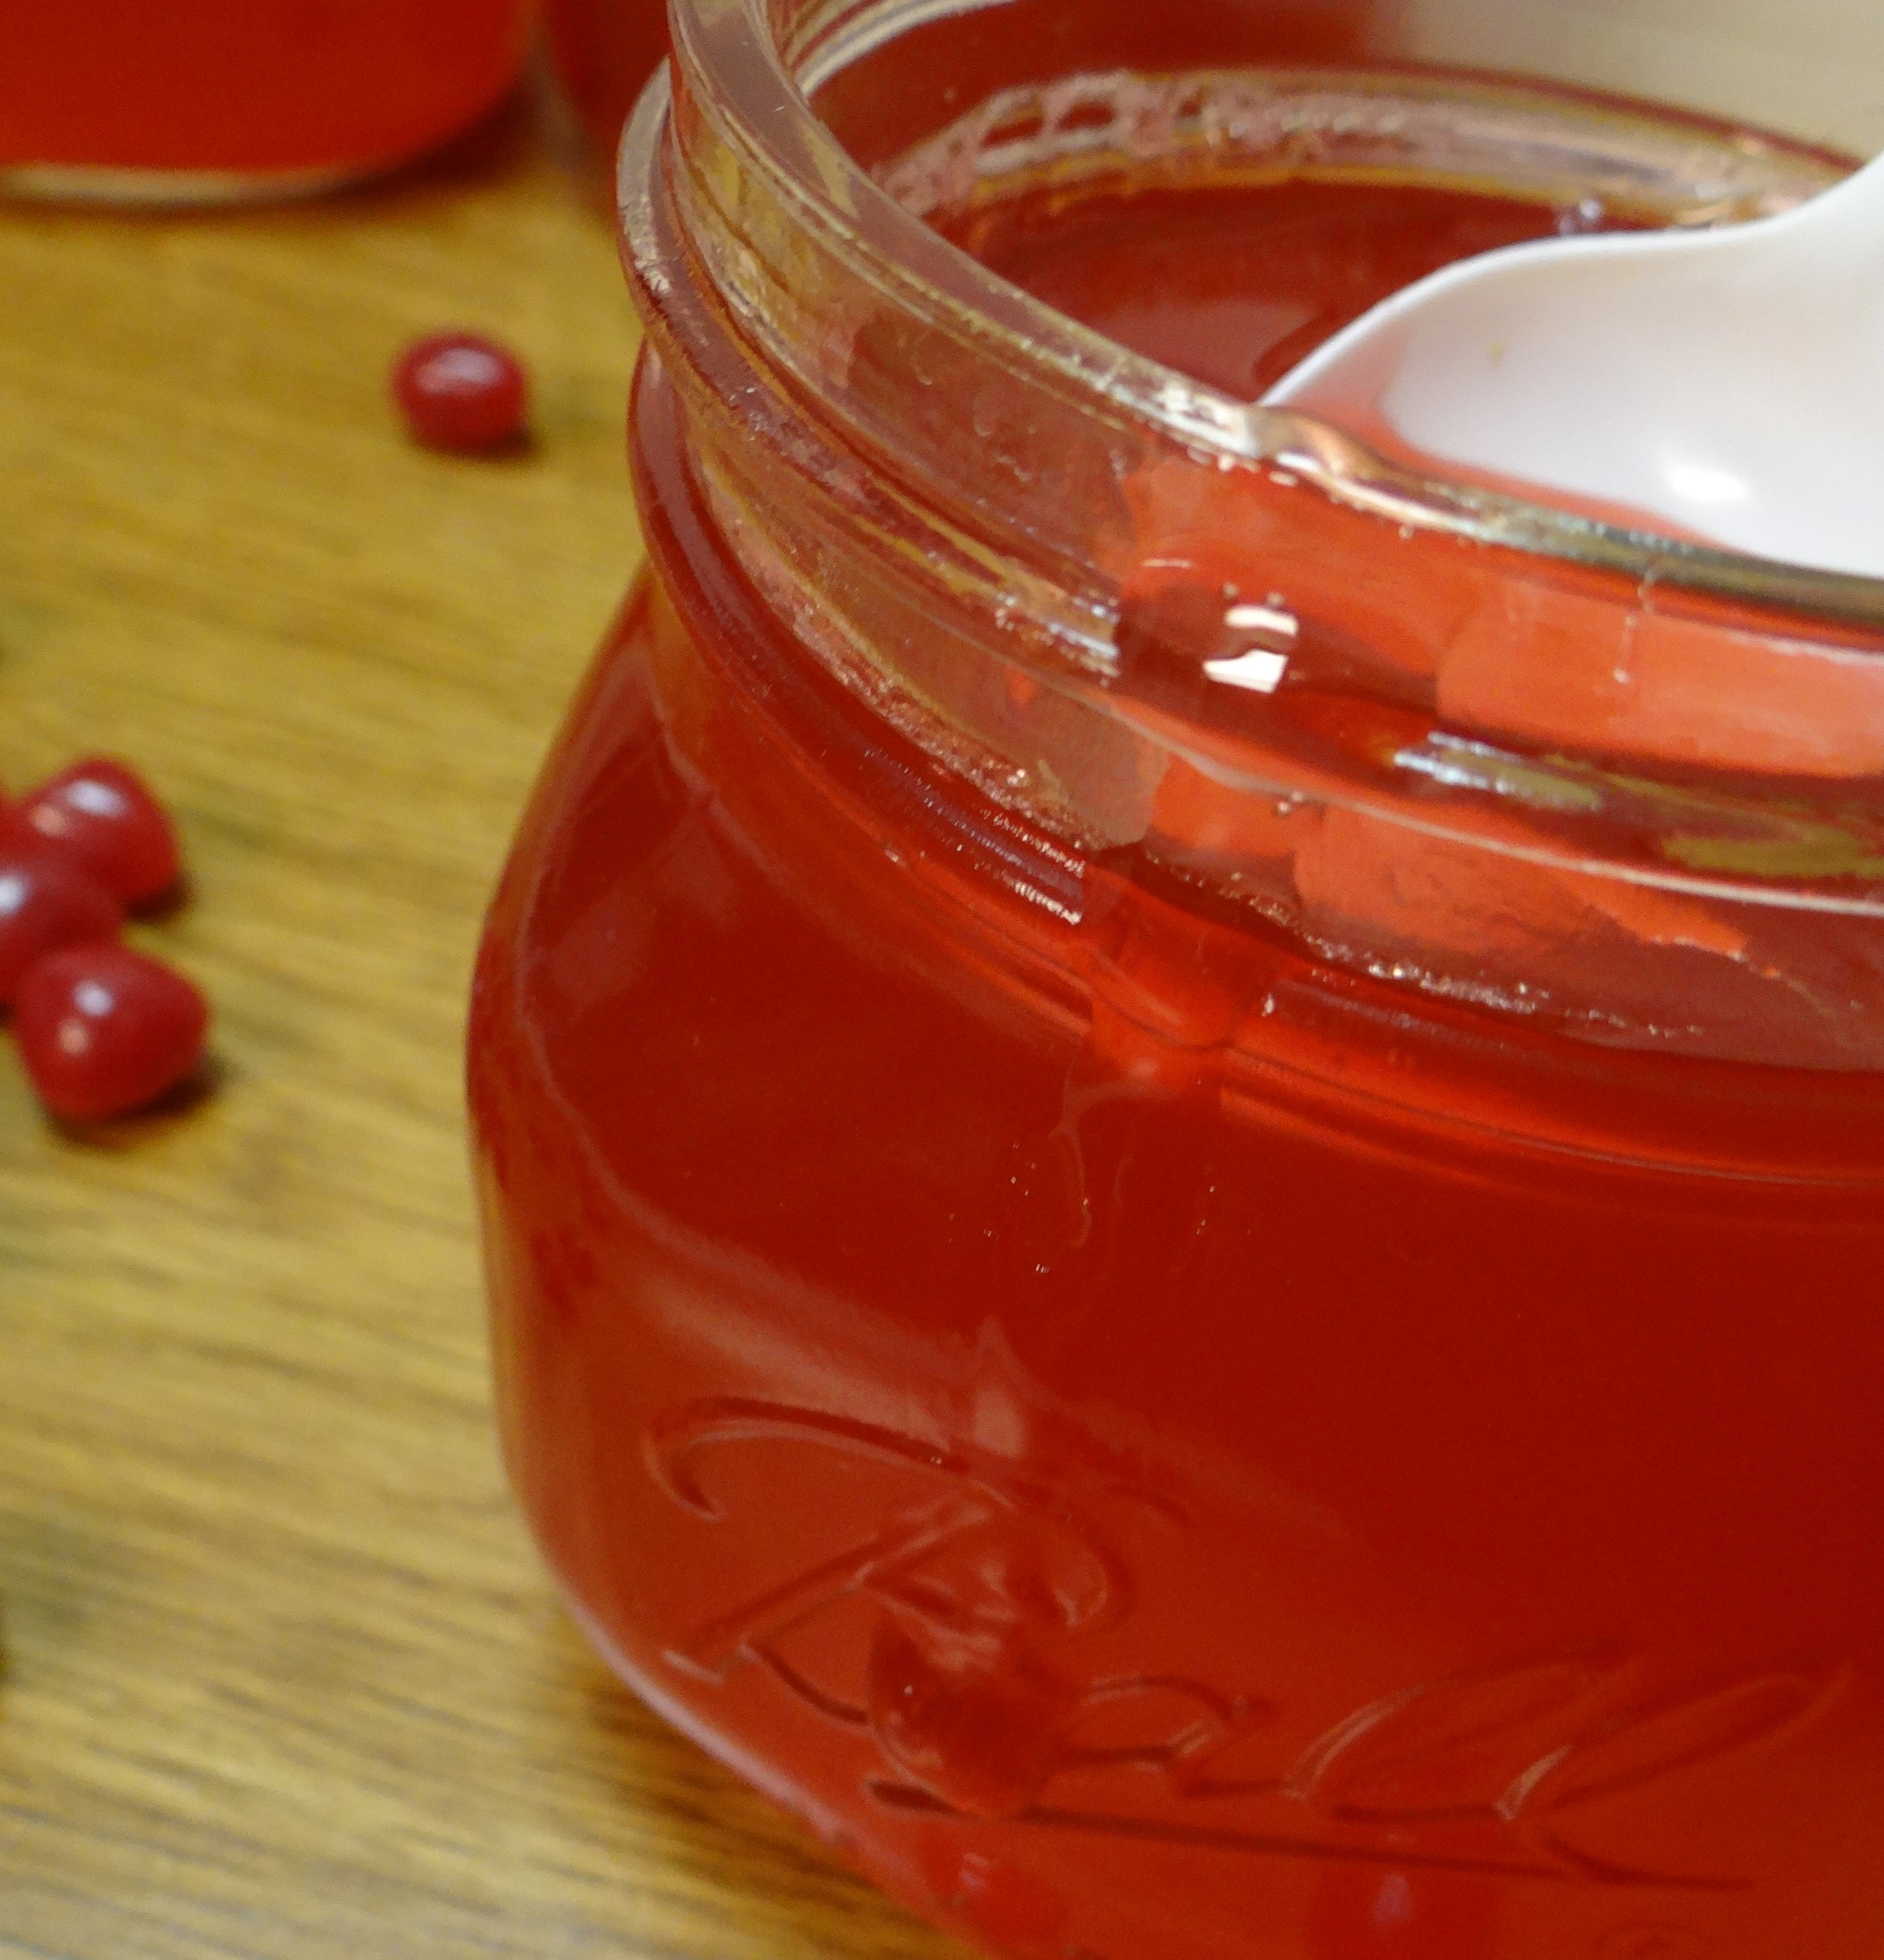 red hot apple jelly yield 3 pint jars or 6 half pint jars - Apple Jelly Recipes